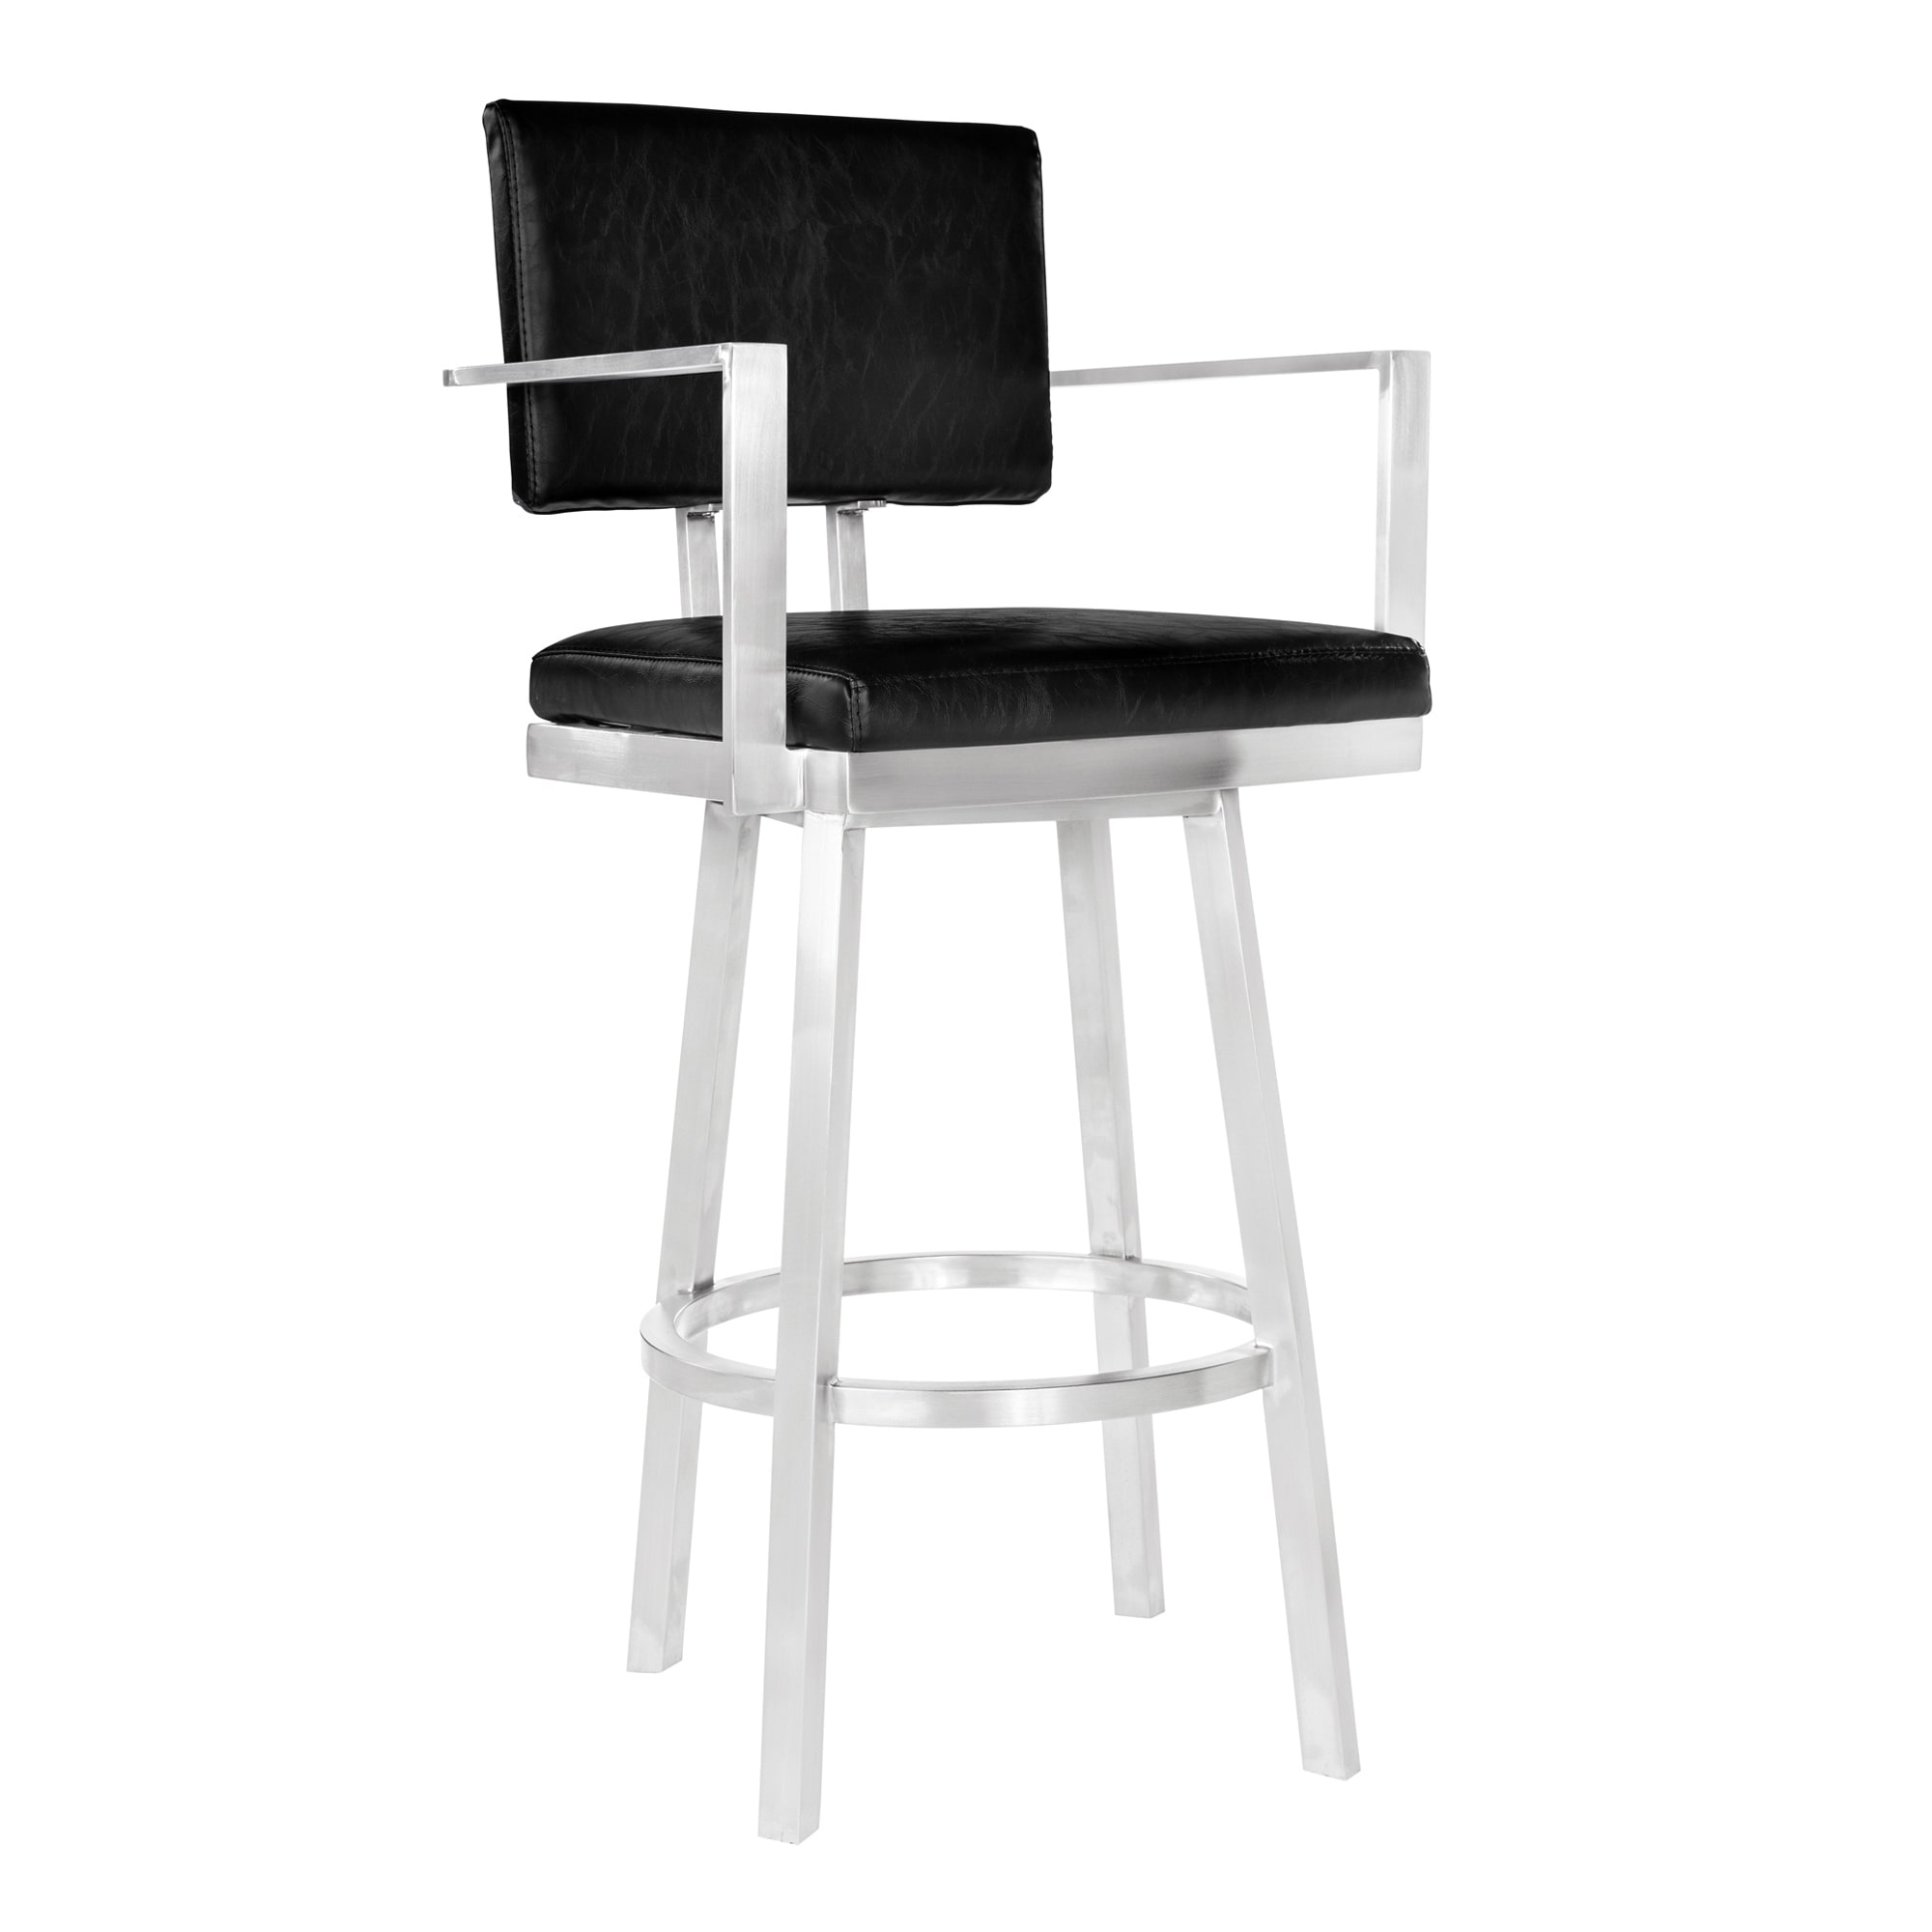 Pleasing Armen Living Balboa Barstool With Arms In Brushed Stainless Steel And Vintage Black Faux Leather Onthecornerstone Fun Painted Chair Ideas Images Onthecornerstoneorg